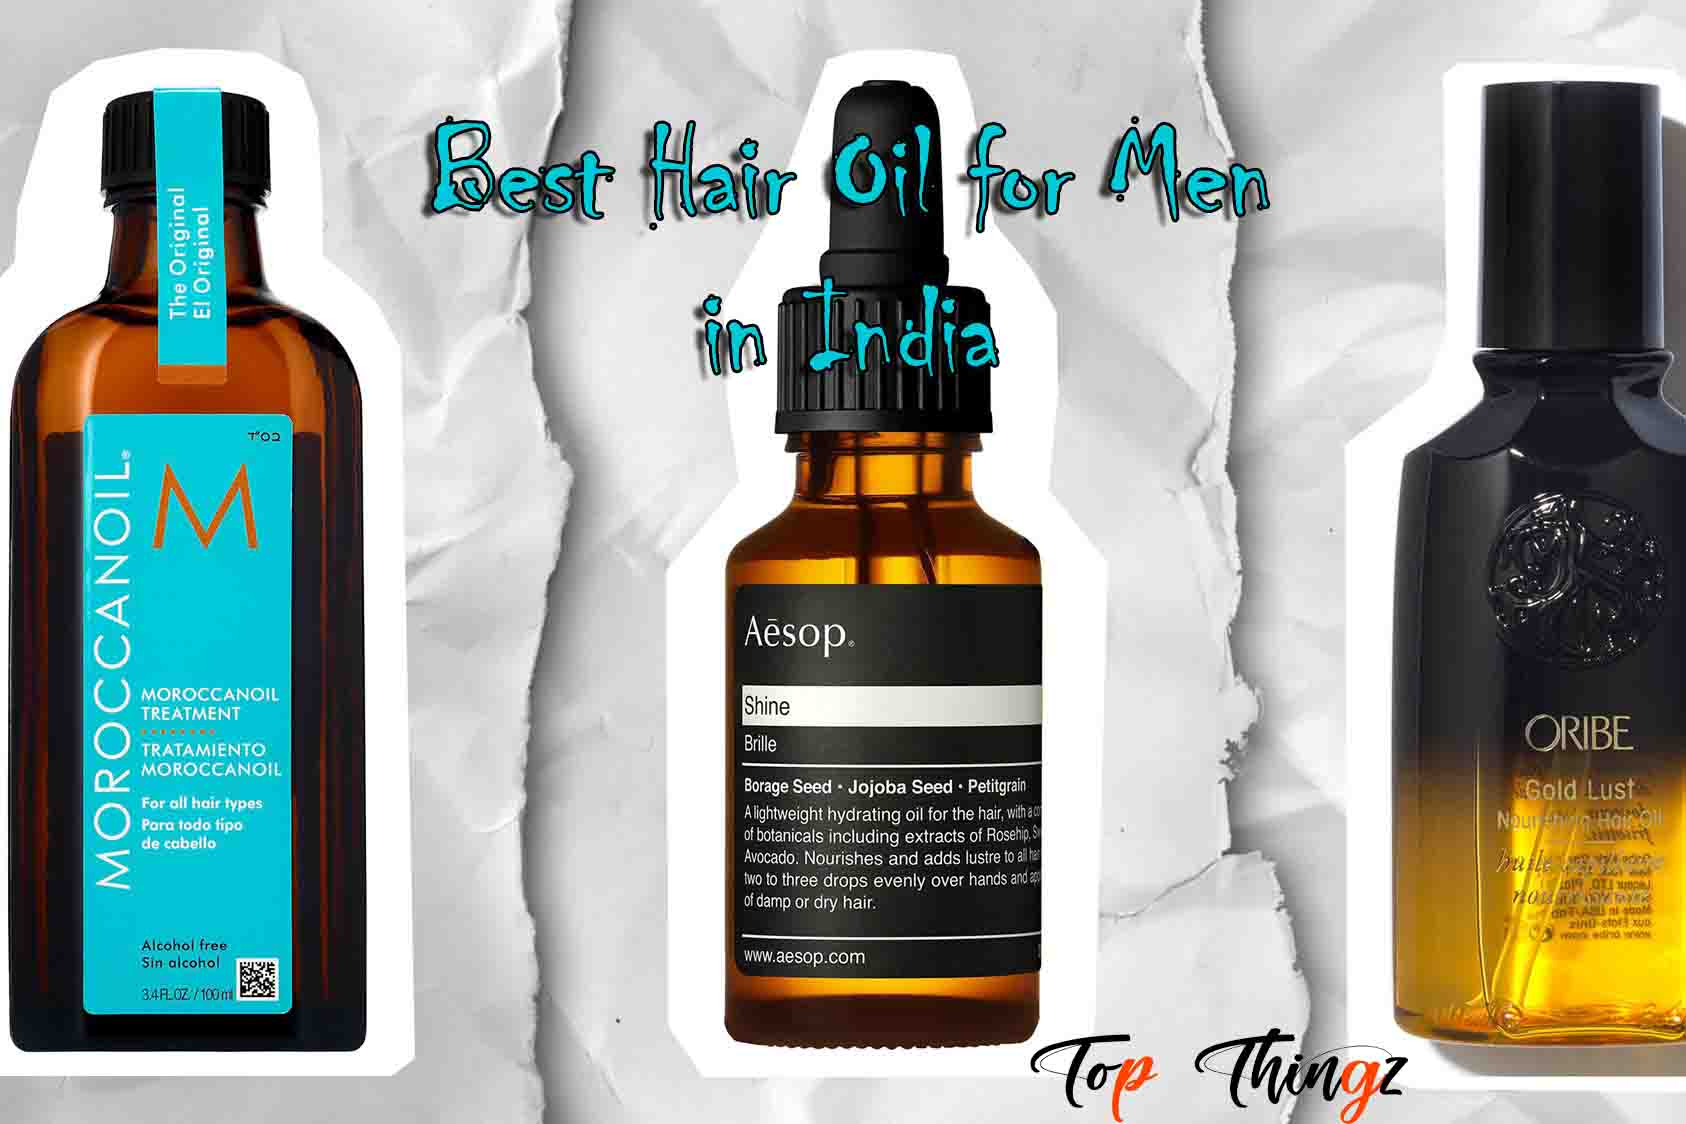 Best Hair Oil for Men in India